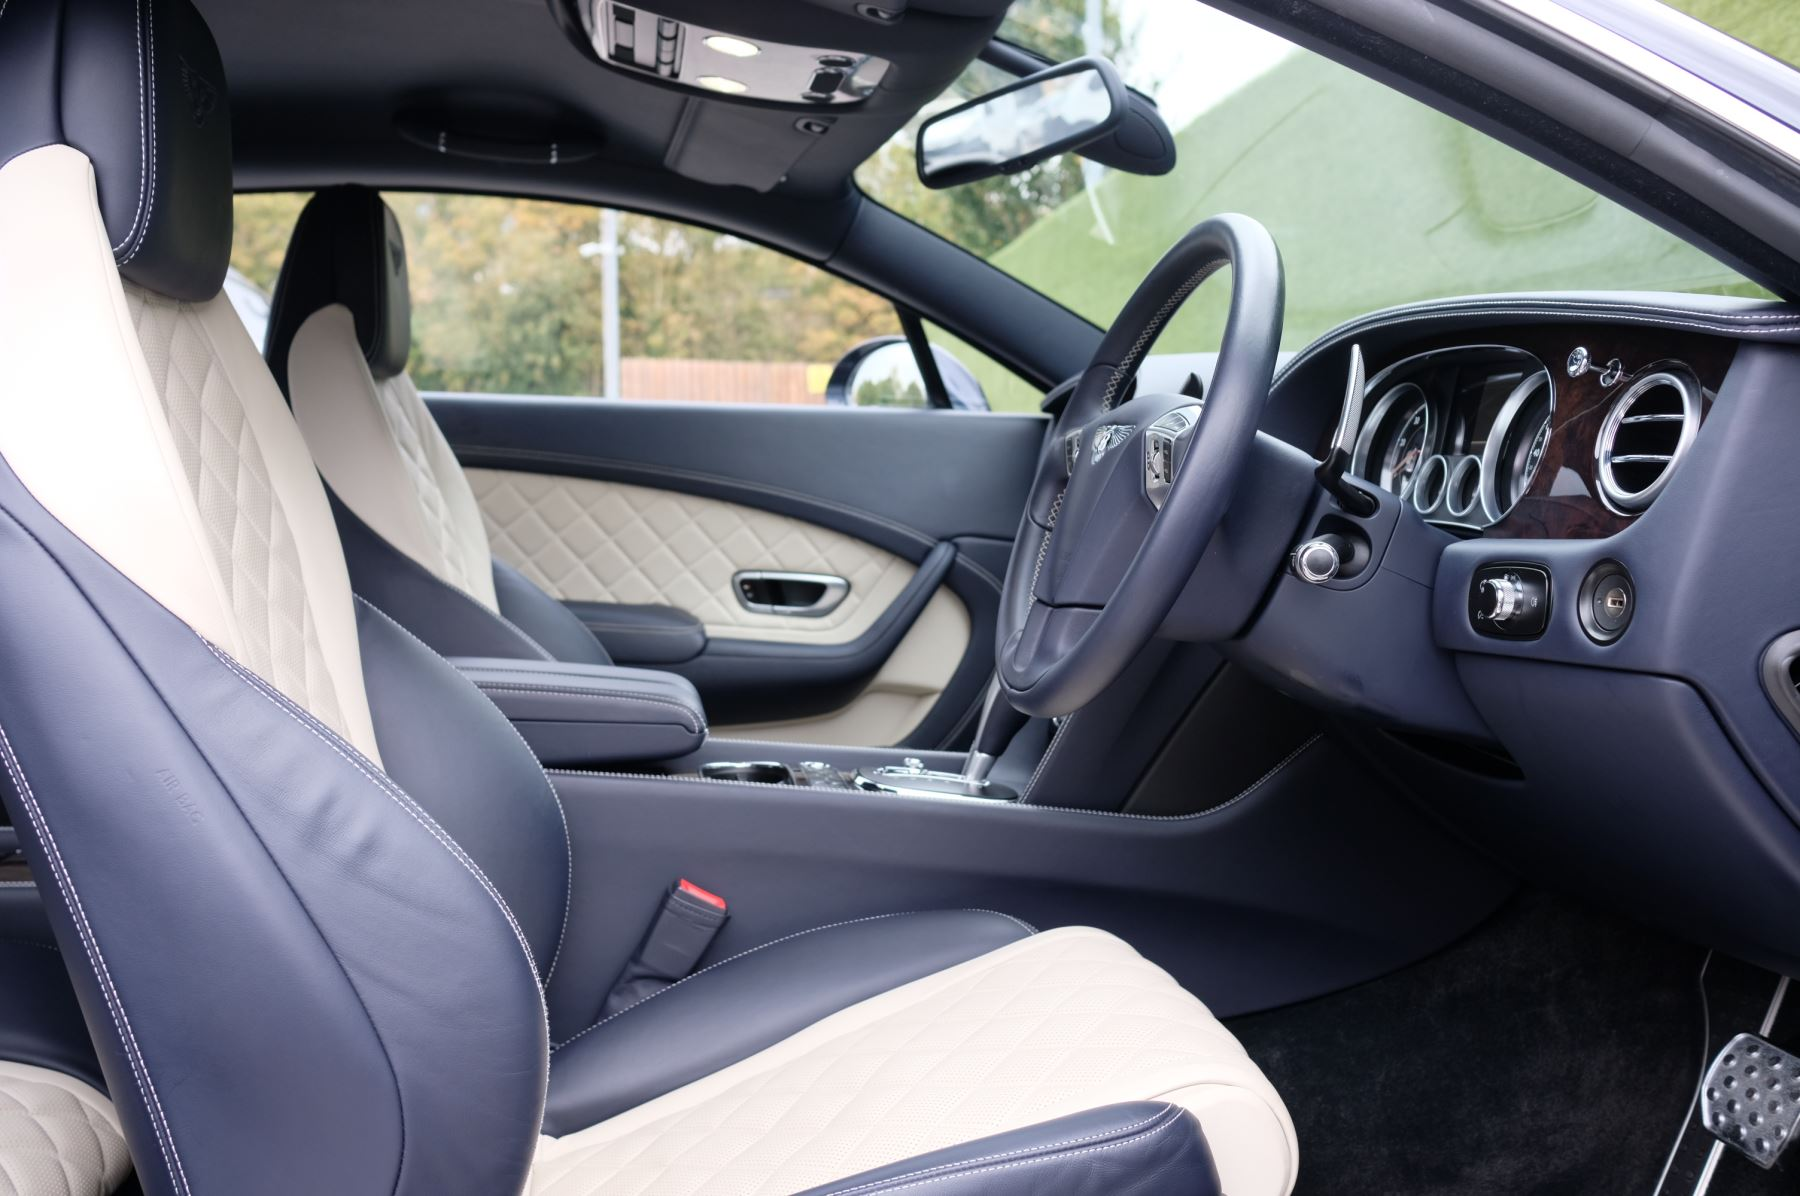 Bentley Continental GT 6.0 W12 [635] Speed - 21 inch Directional Sports Alloys - Ventilated Front Seats with Massage image 17